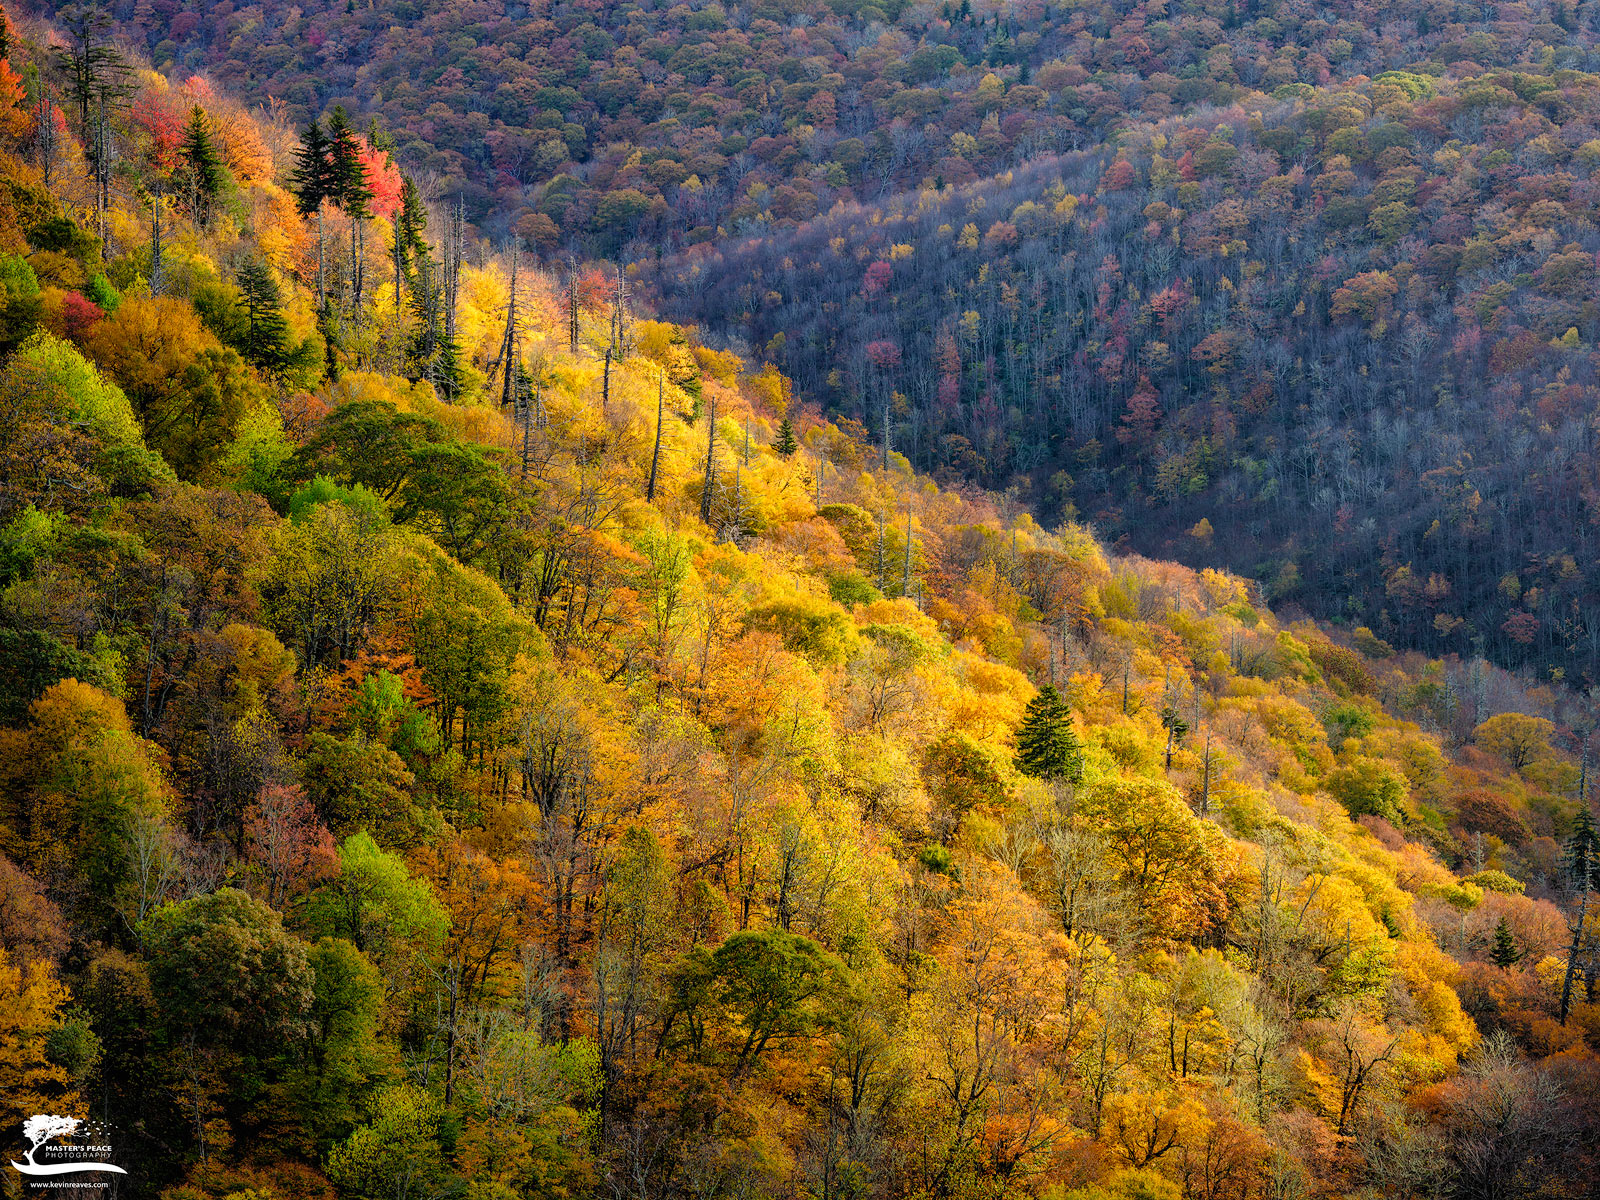 The sun burst through the clouds this late afternoon to illuminate a portion of the hillside covered in Fall colors.